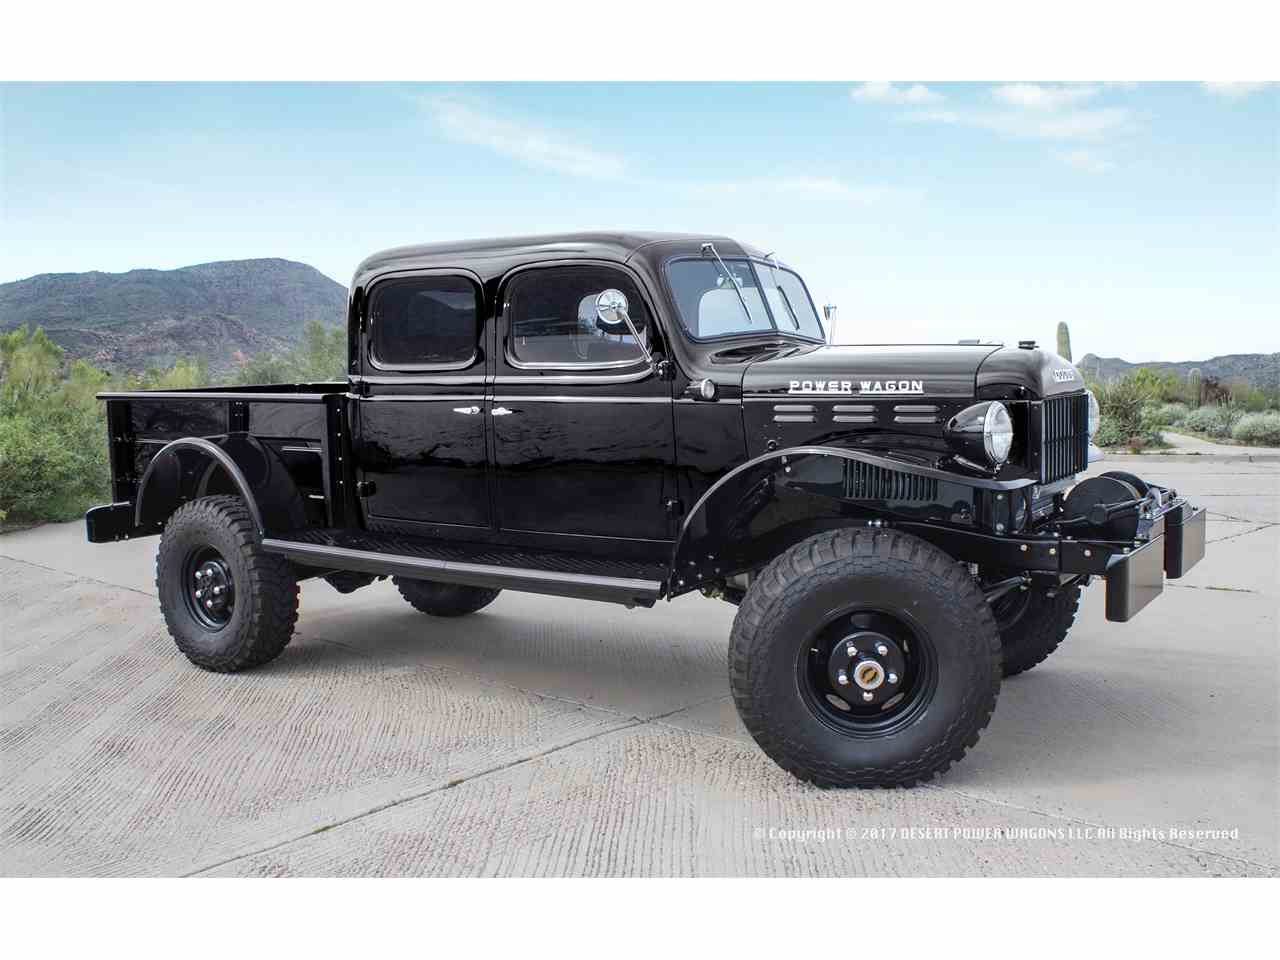 1947 dodge power wagon for sale cc 1040831 for Nearest motor vehicle inspection station